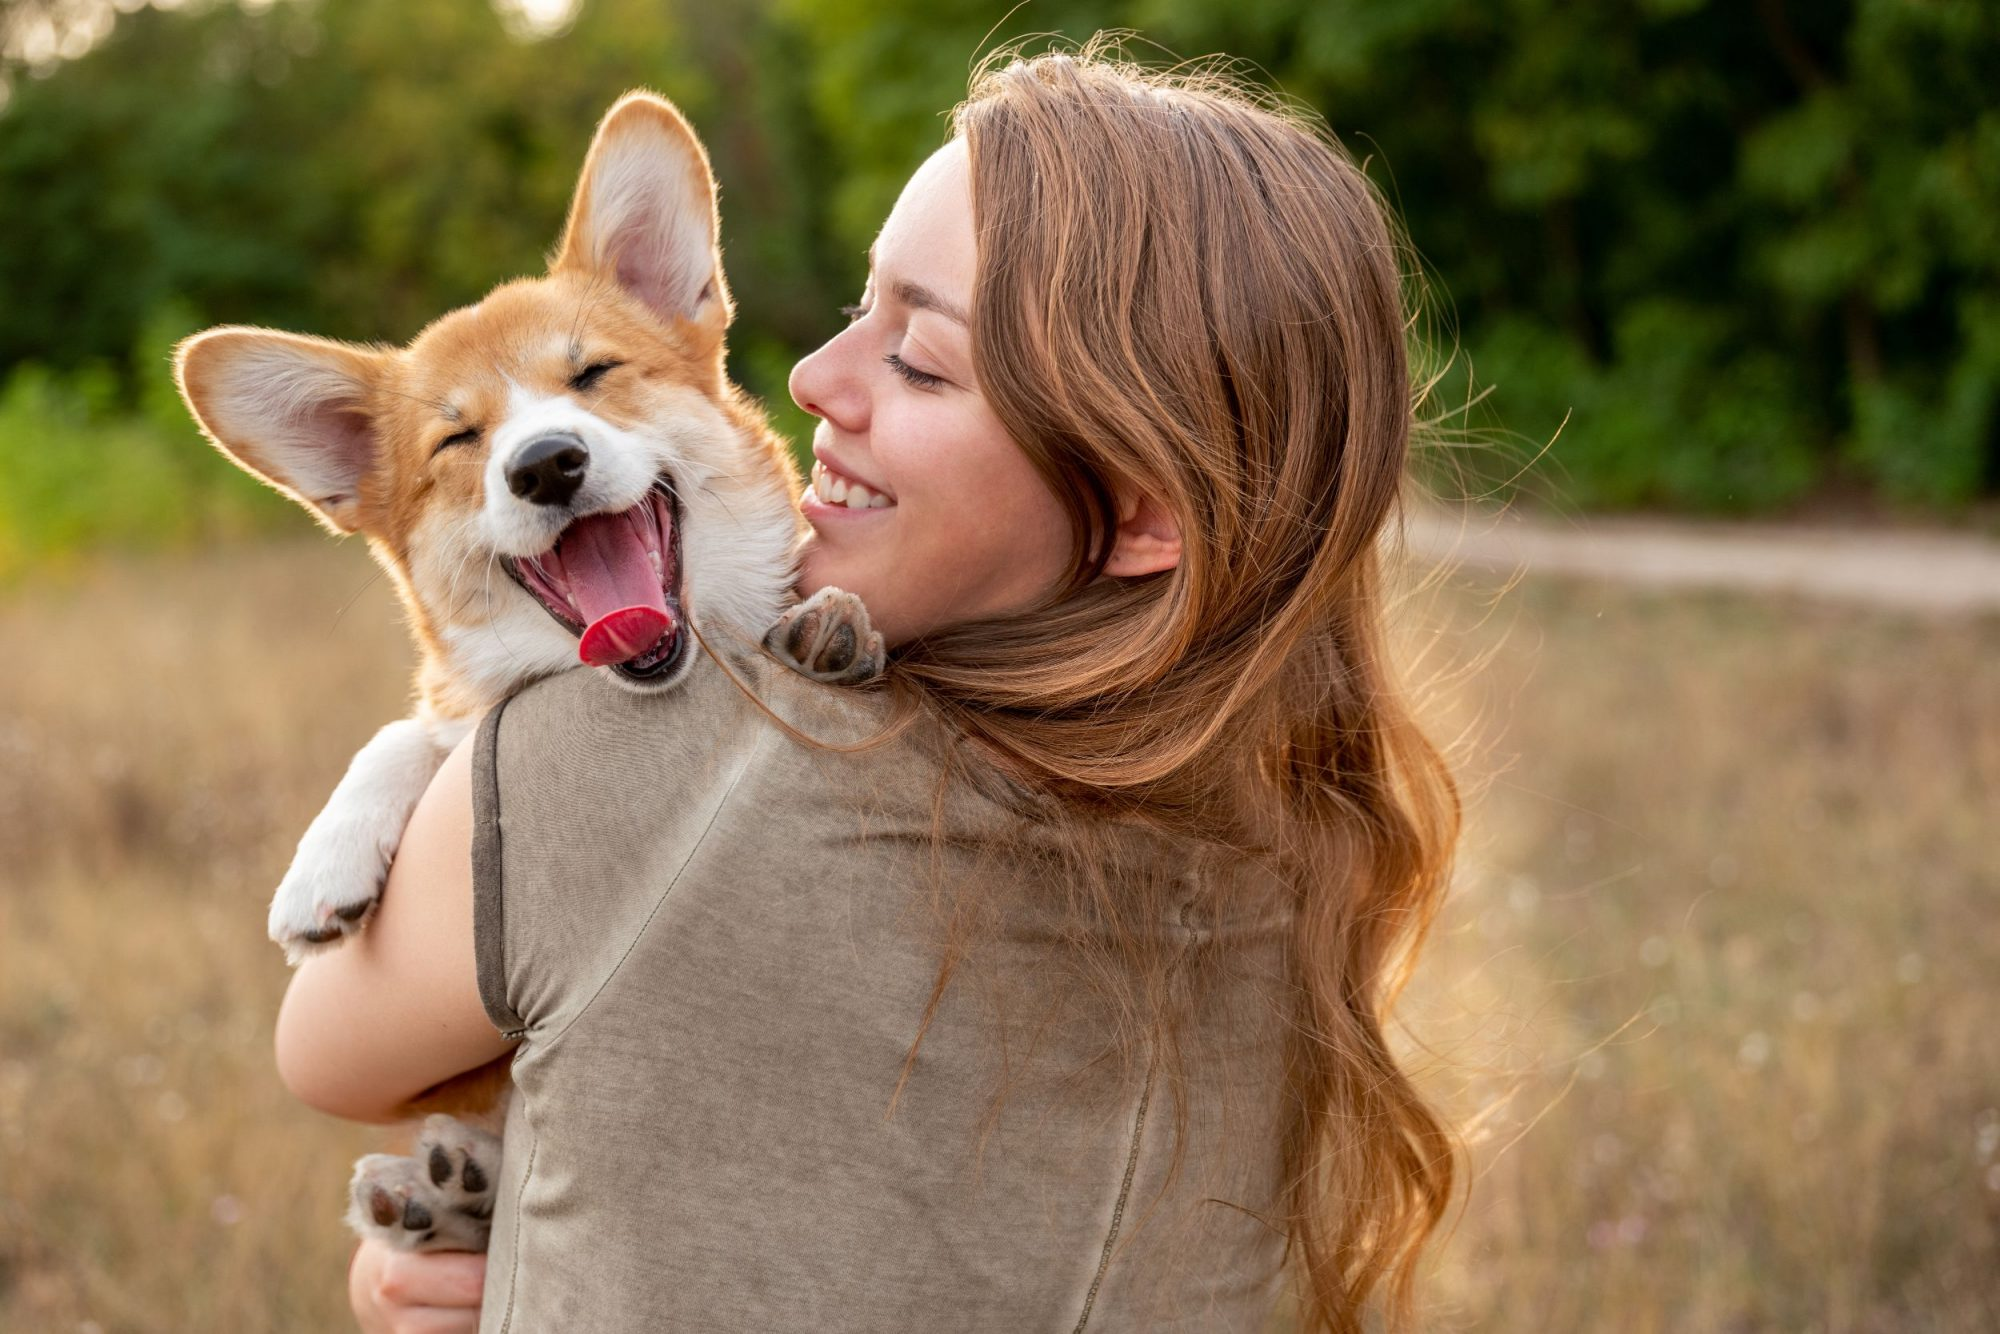 Woman holding puppy in her arms.